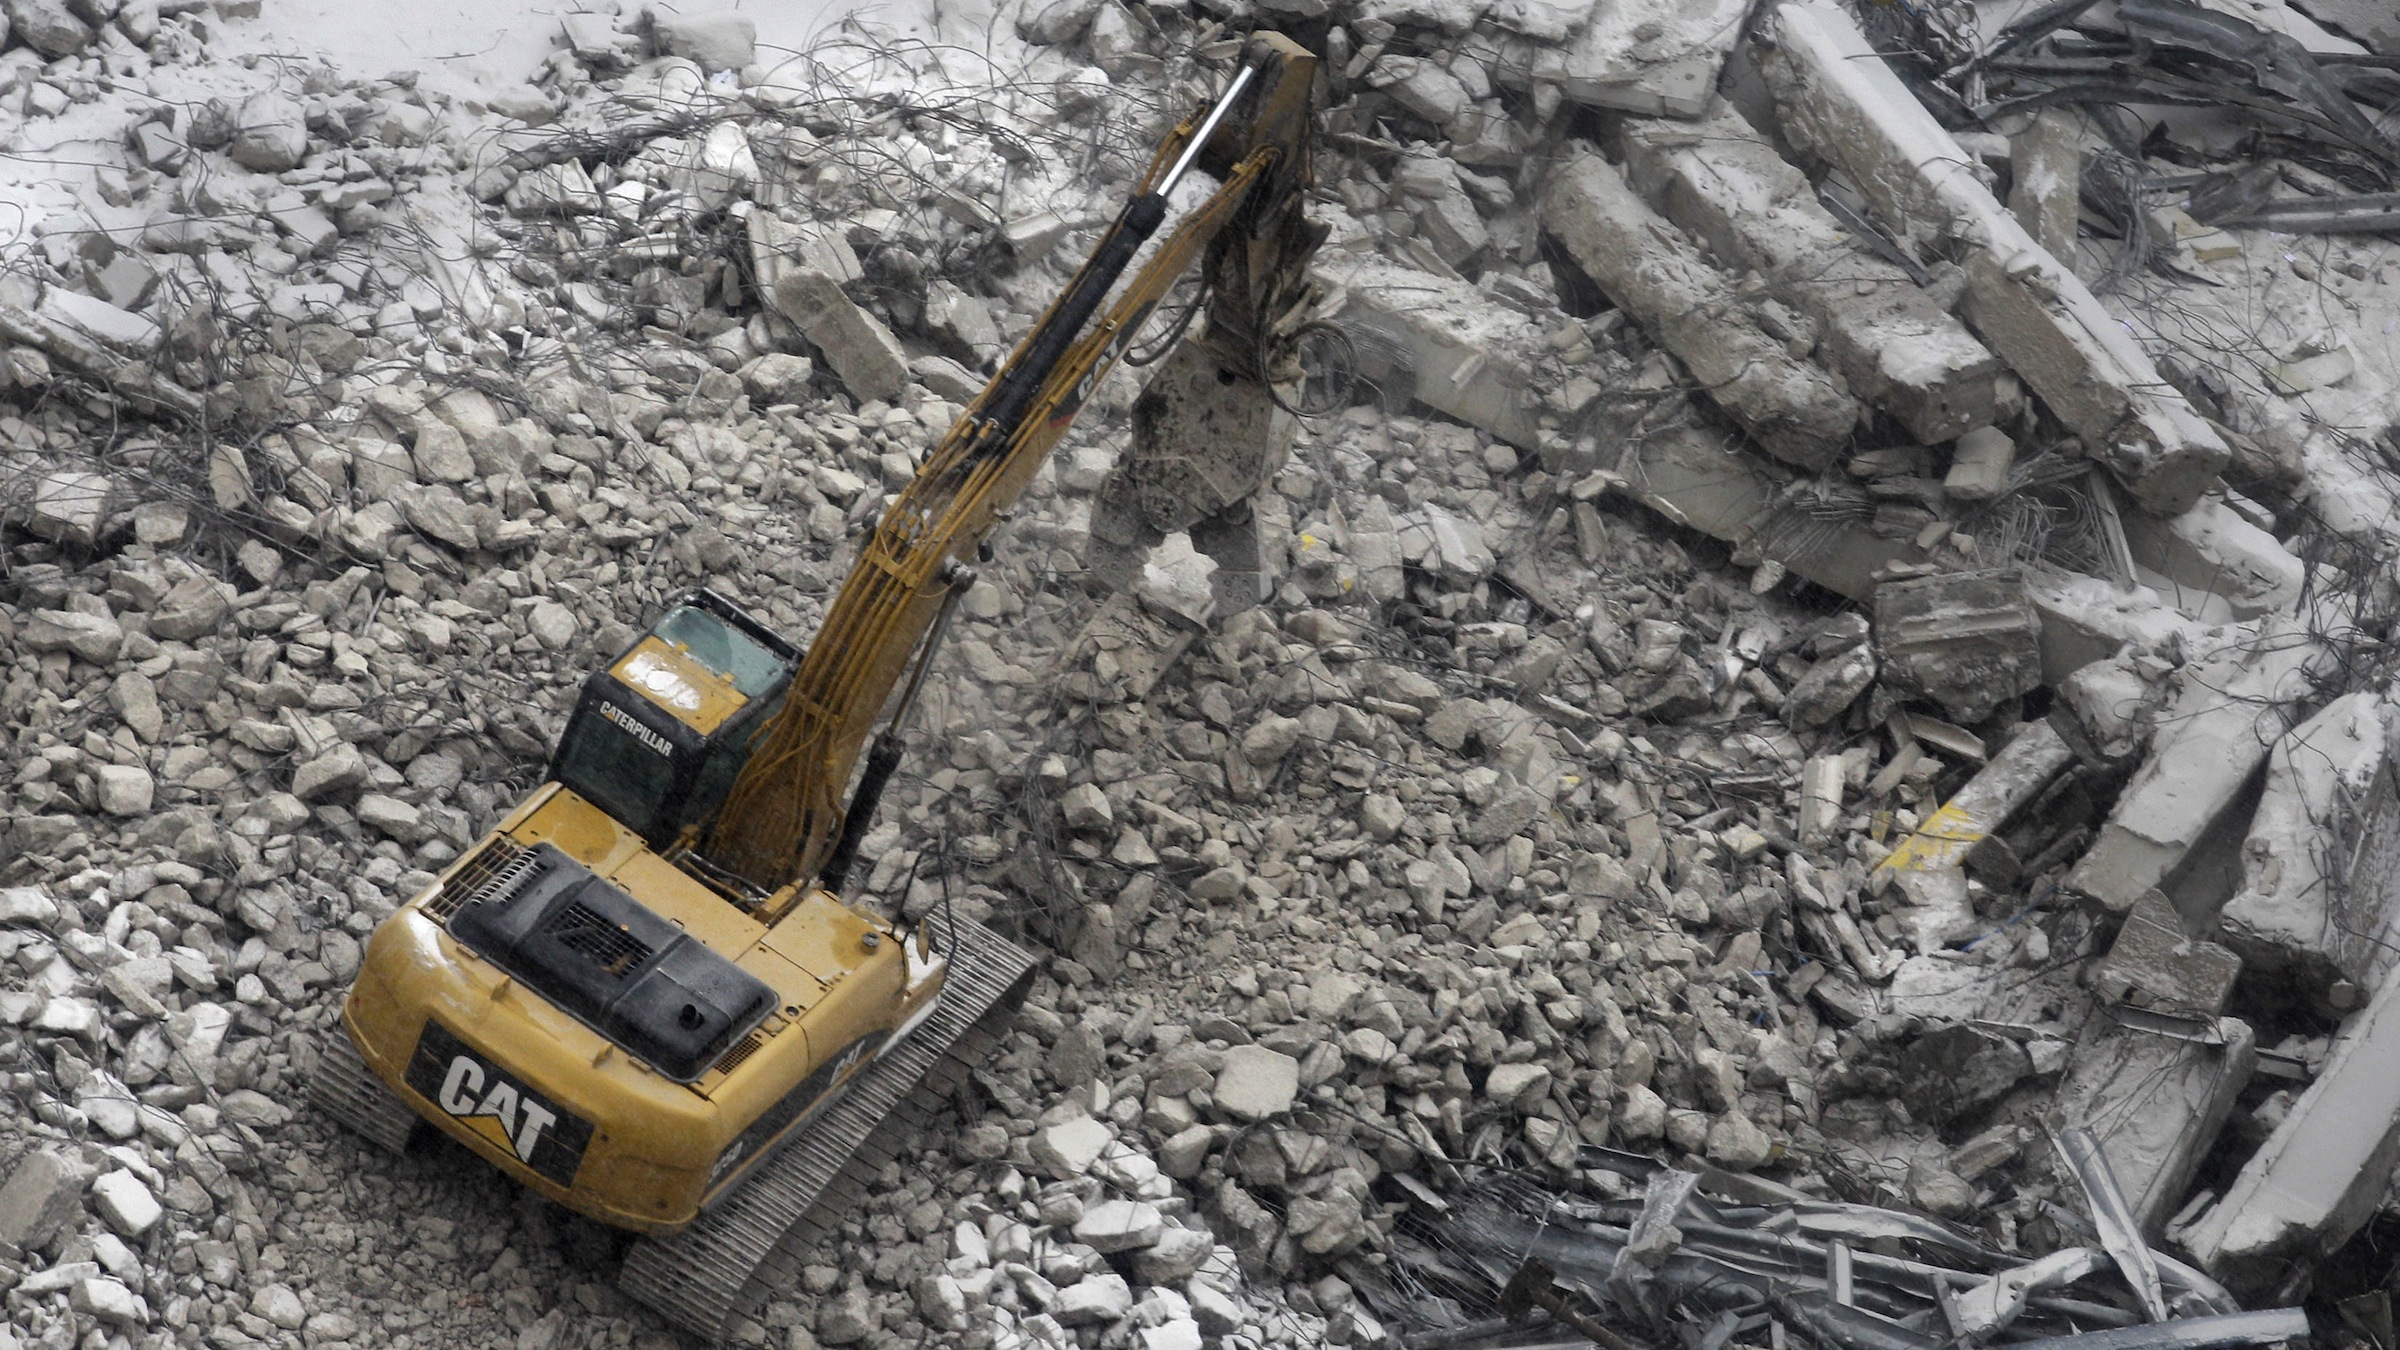 In this Friday, Jan. 14, 2011 photo, a Caterpillar ditch digger works at the site of the the $465 million medical mart complex in Cleveland. Caterpillar said Thursday, Jan. 27, 2011 that the company more than quadrupled its fourth-quarter profit as stronger demand helped increase global sales of mining and construction equipment. (AP Photo/Amy Sancetta)